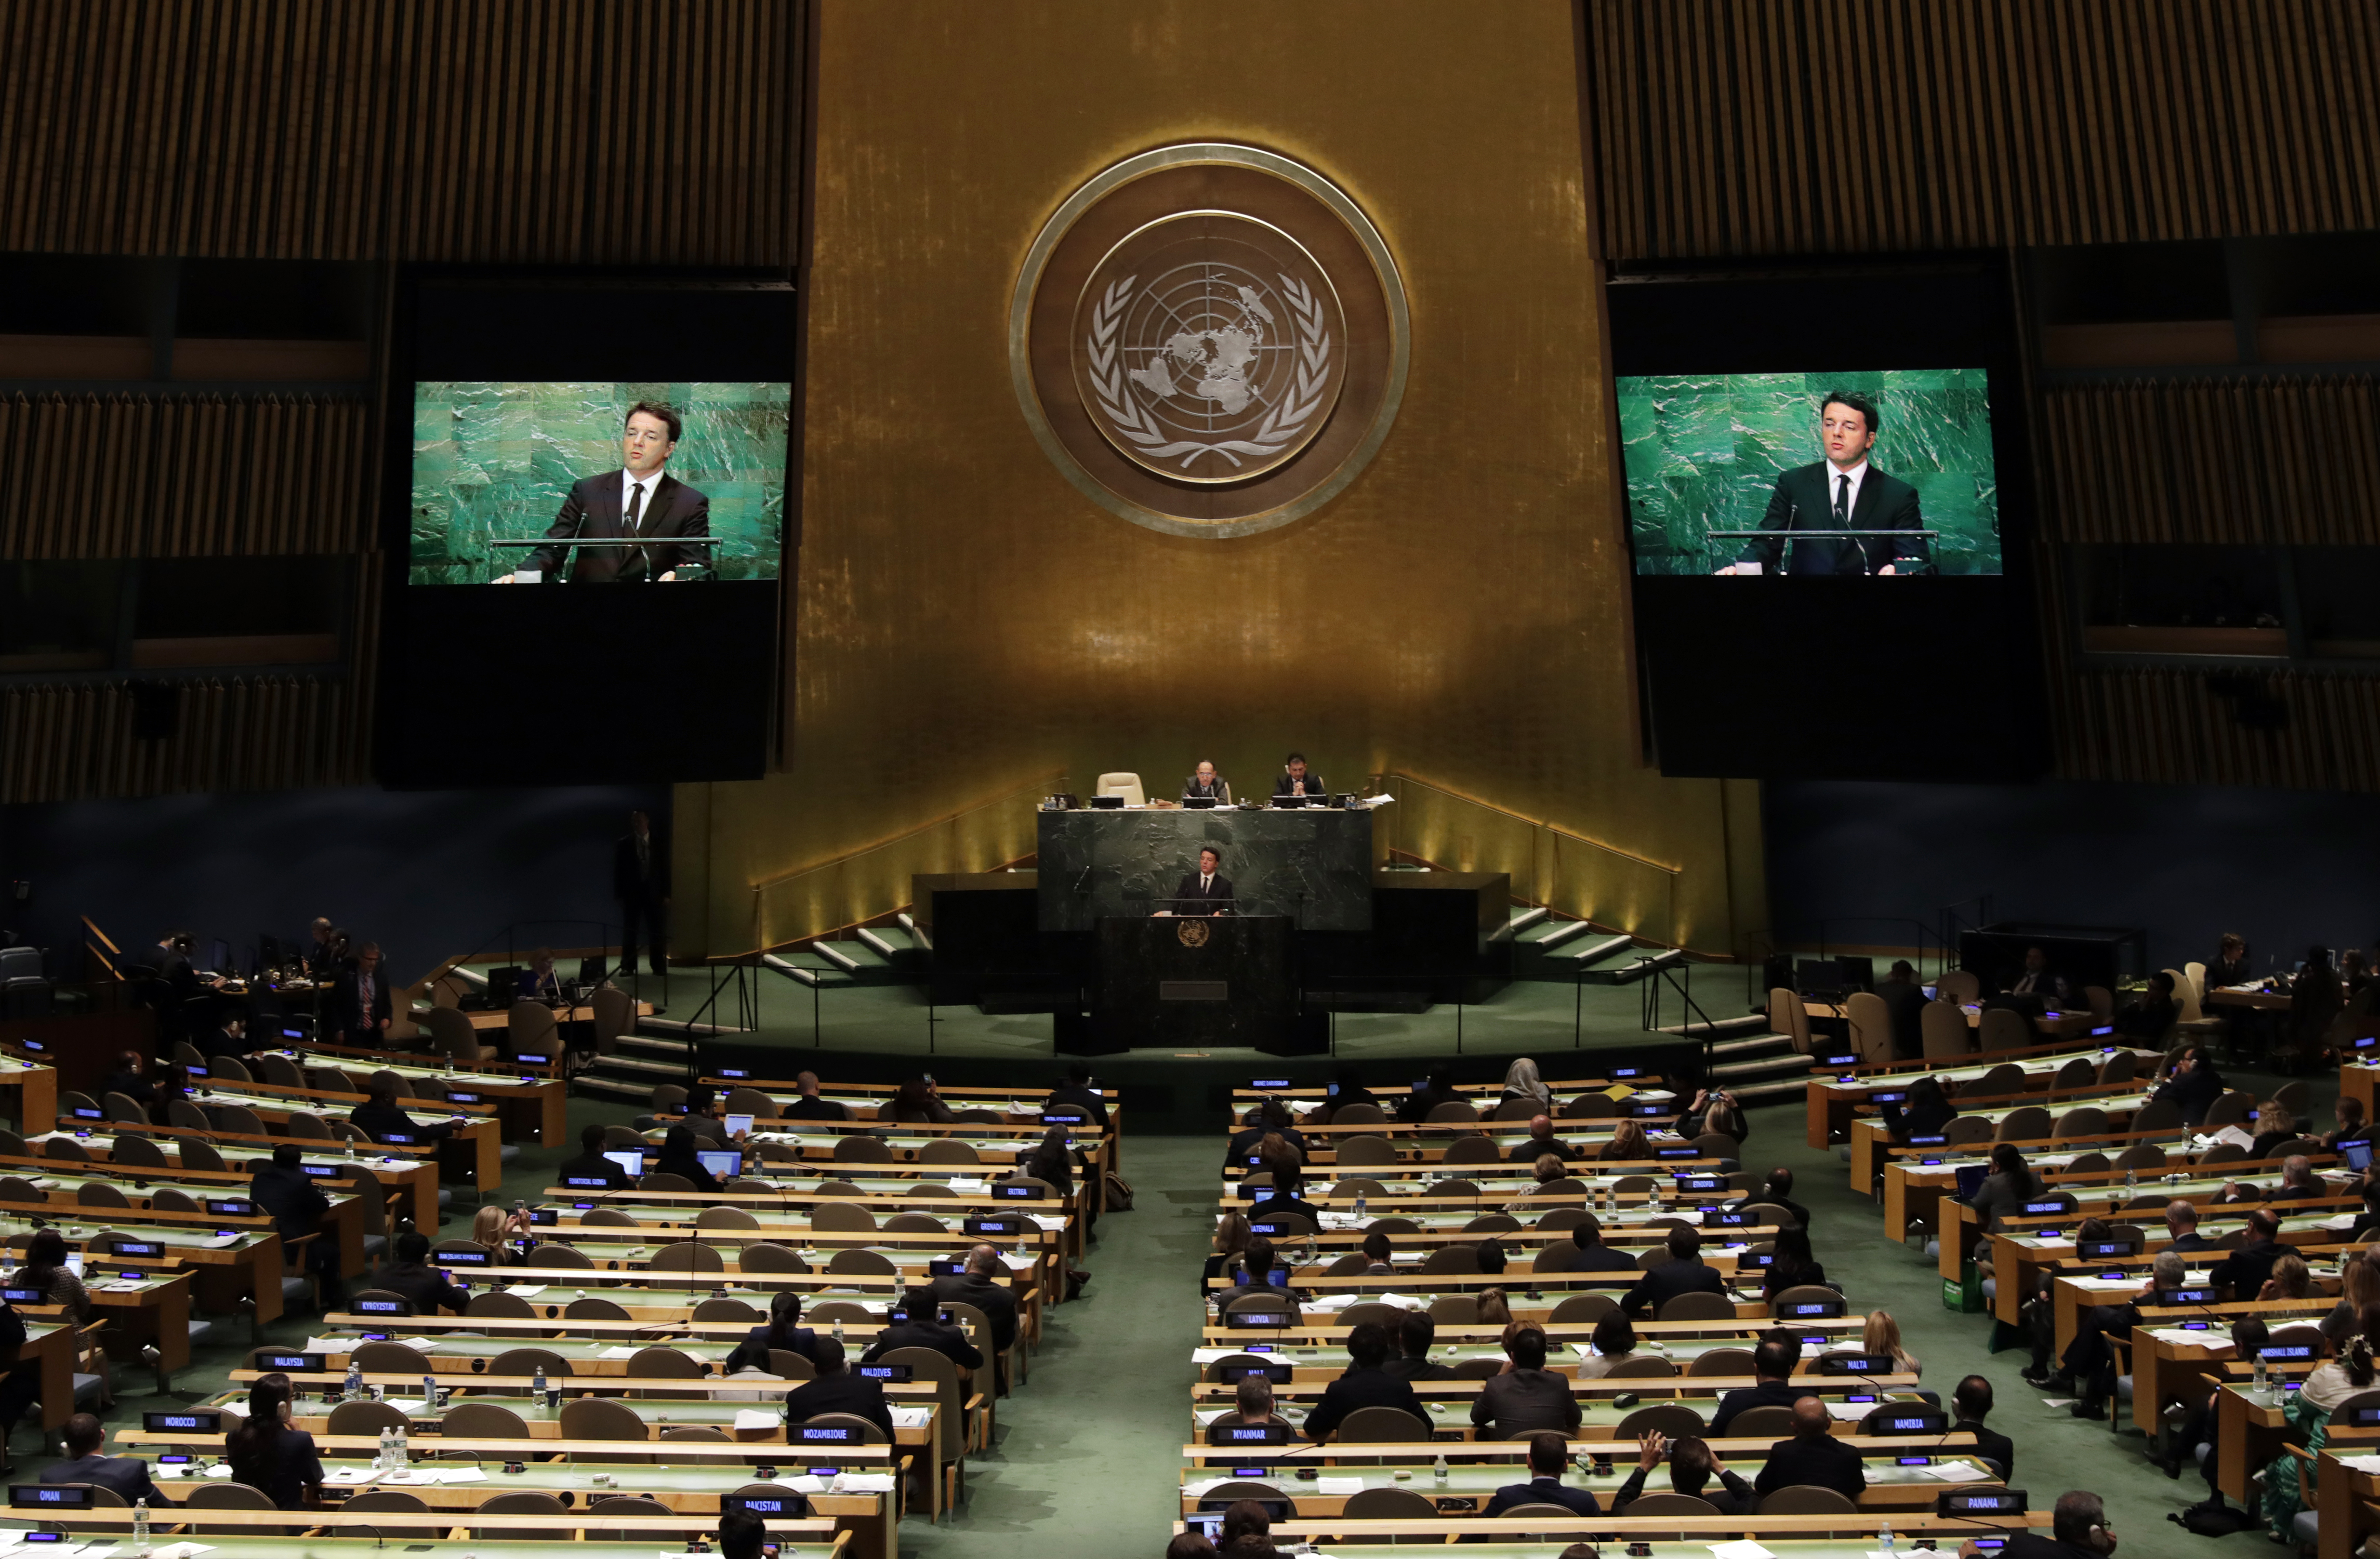 an introduction to the general assembly of the united nations The united nations general assembly 2018 introduction 1 the 73rd session of the united nations general assembly (unga) will.